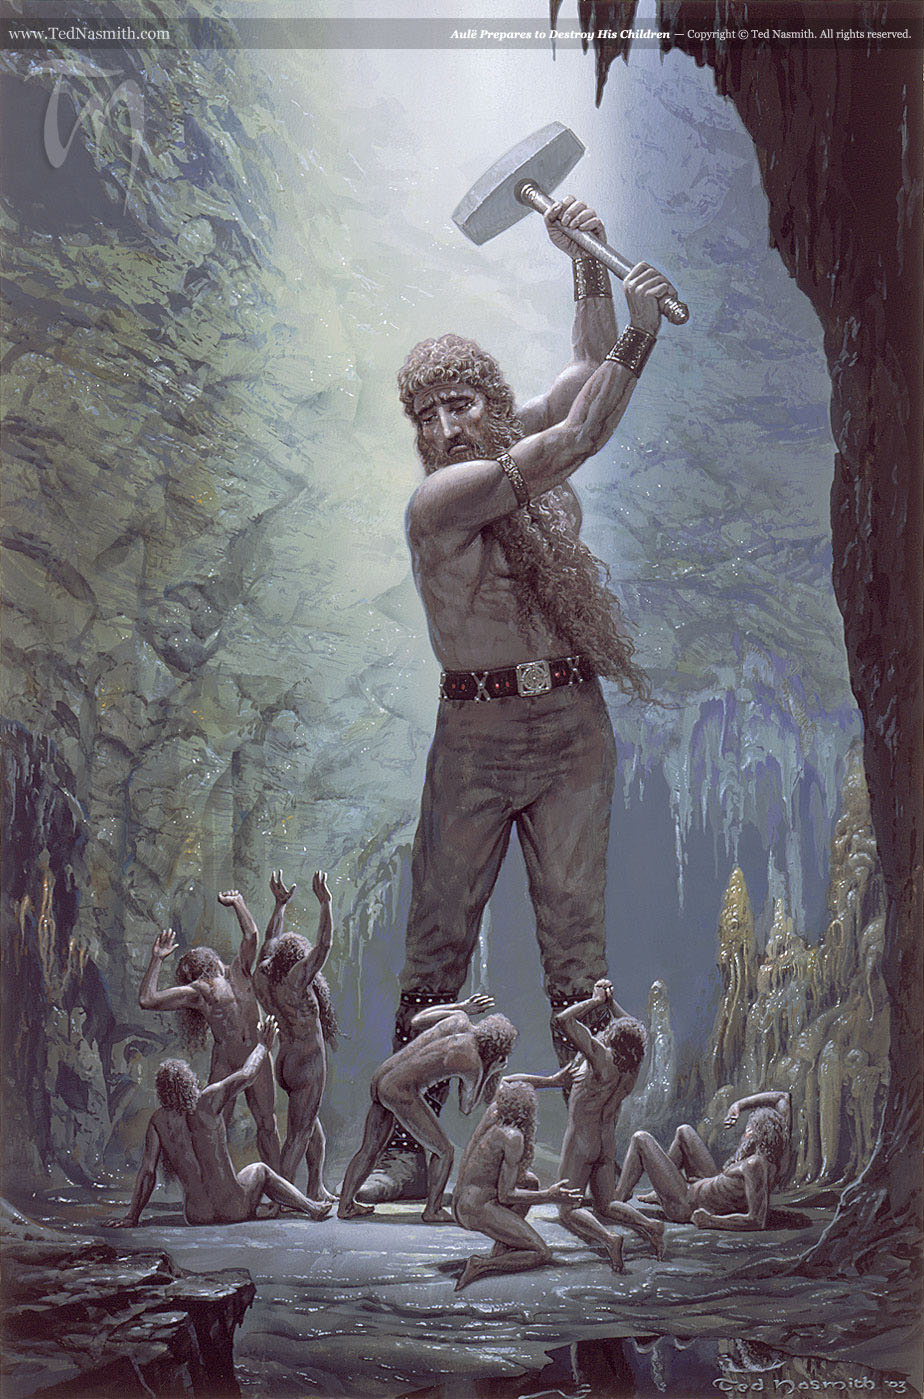 Aule by Ted Nasmith